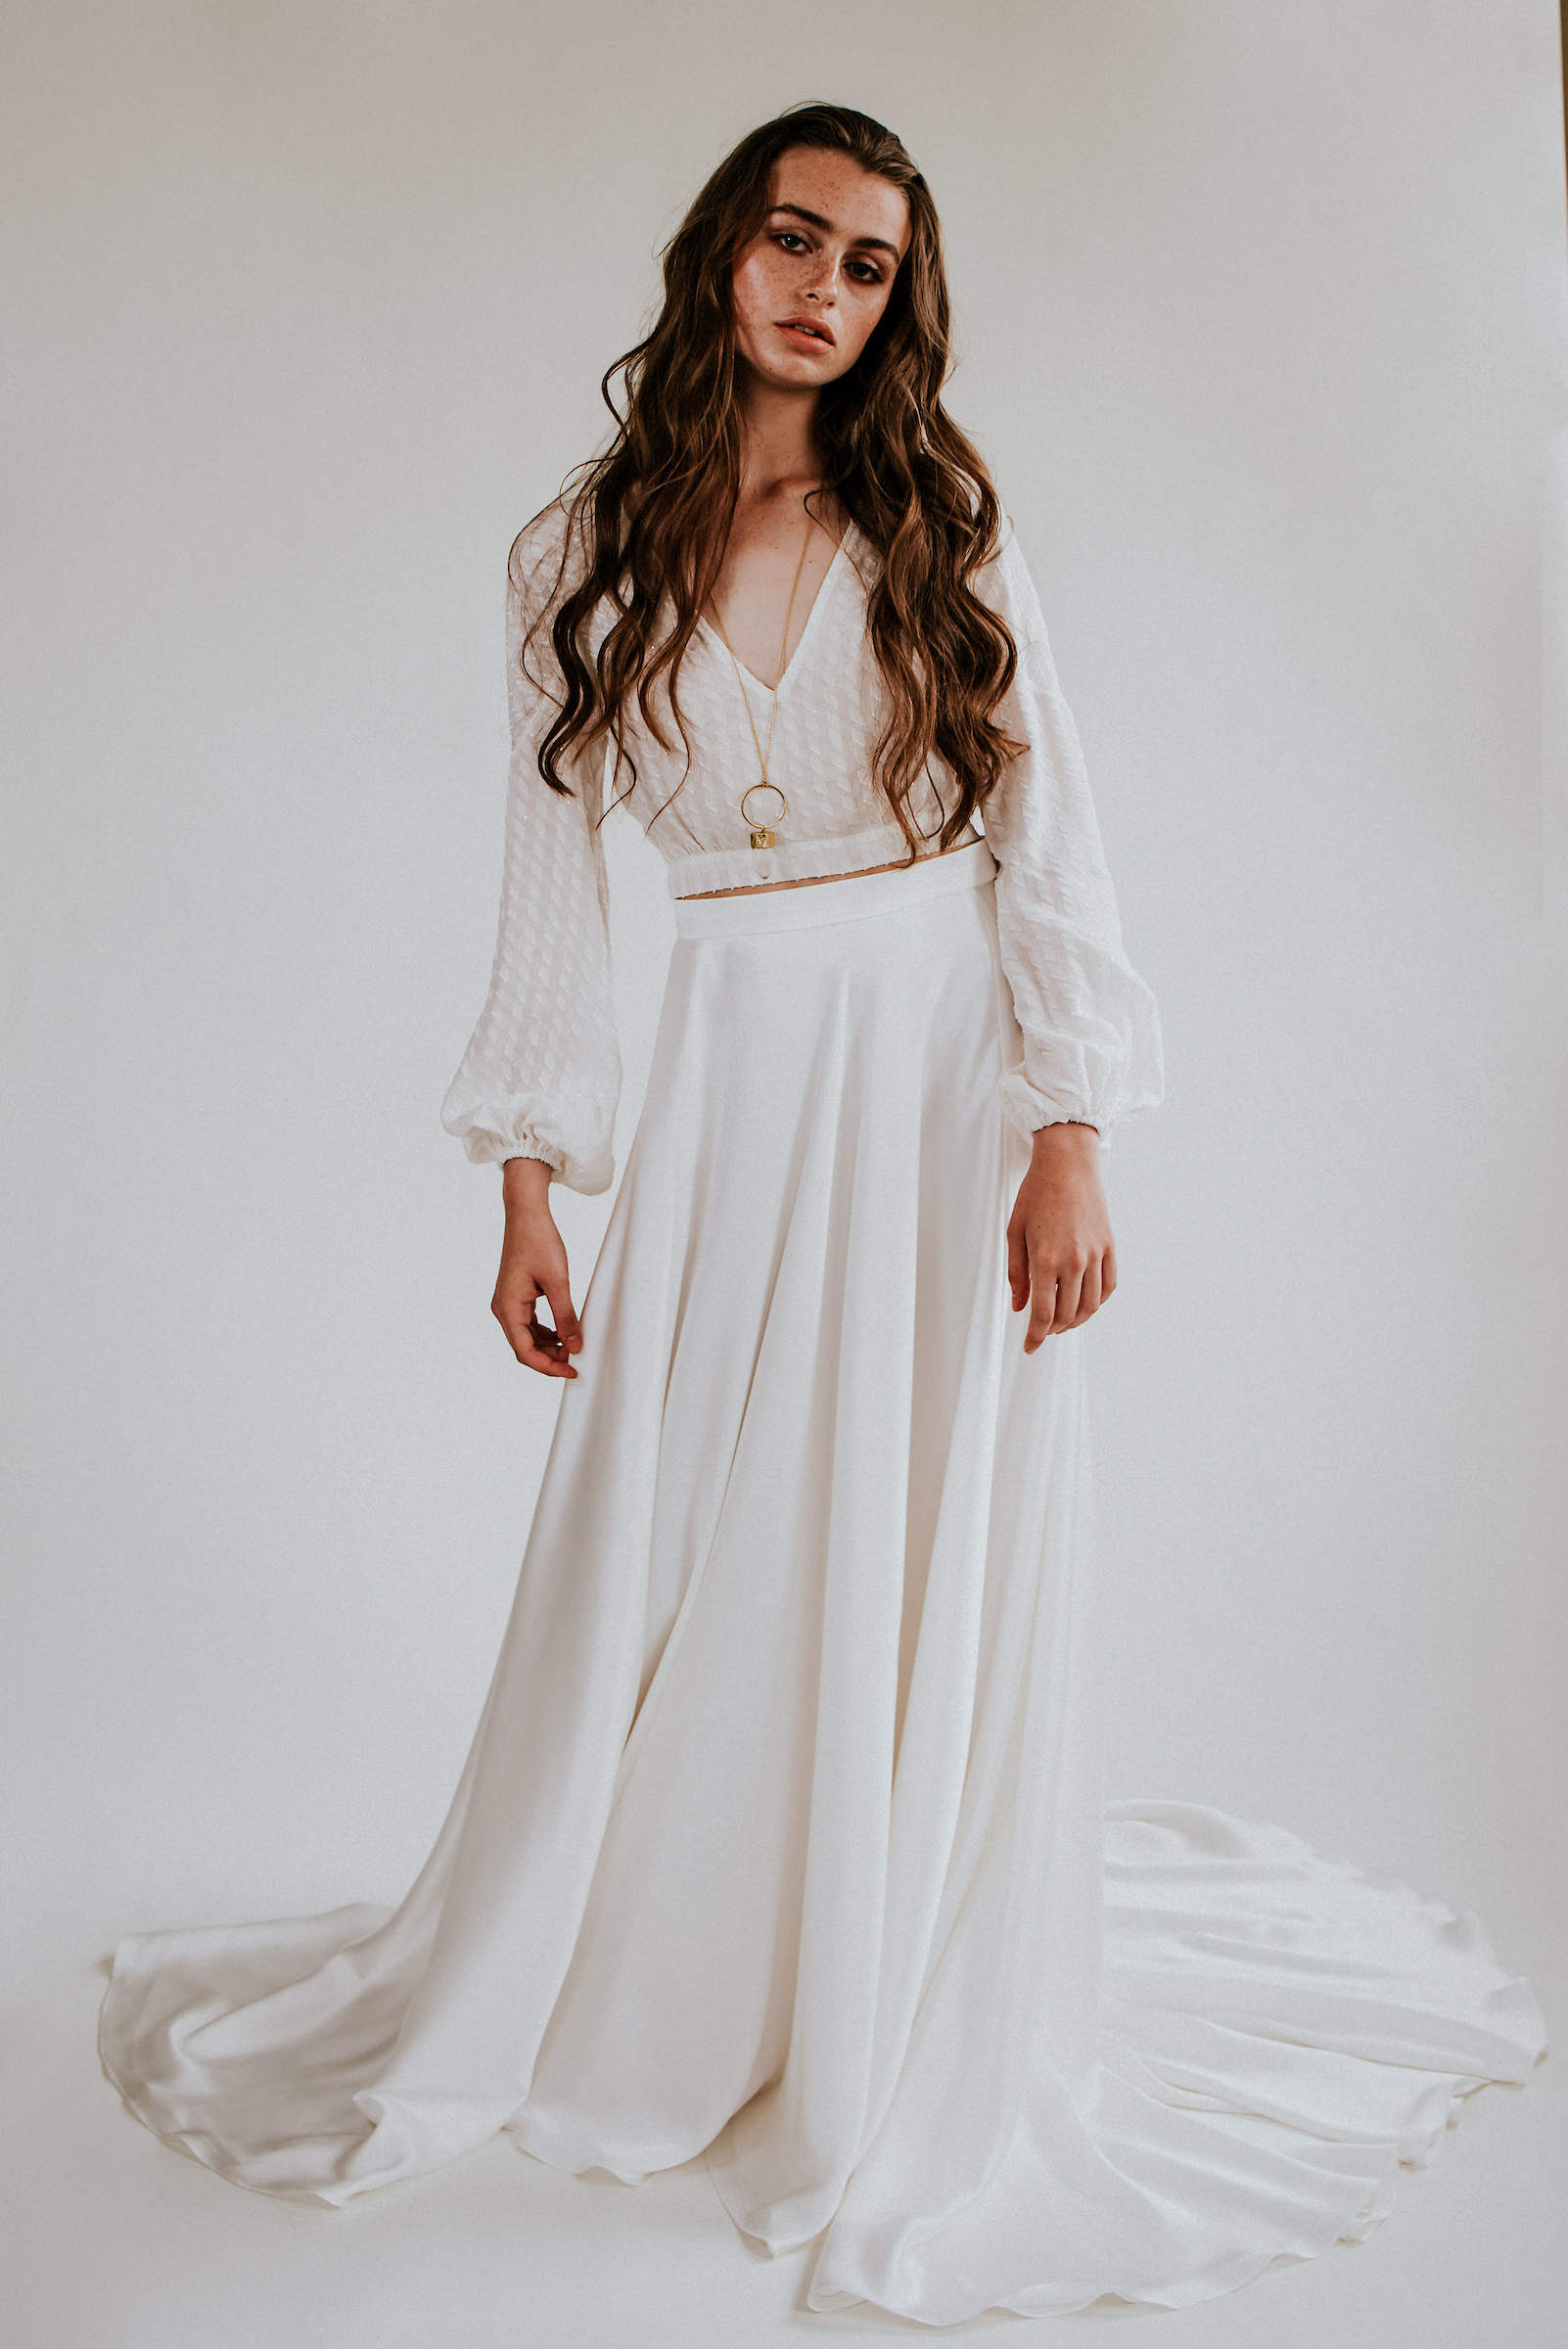 boho wedding dress for 2020 by eco friendly bridal label rolling in roses uk